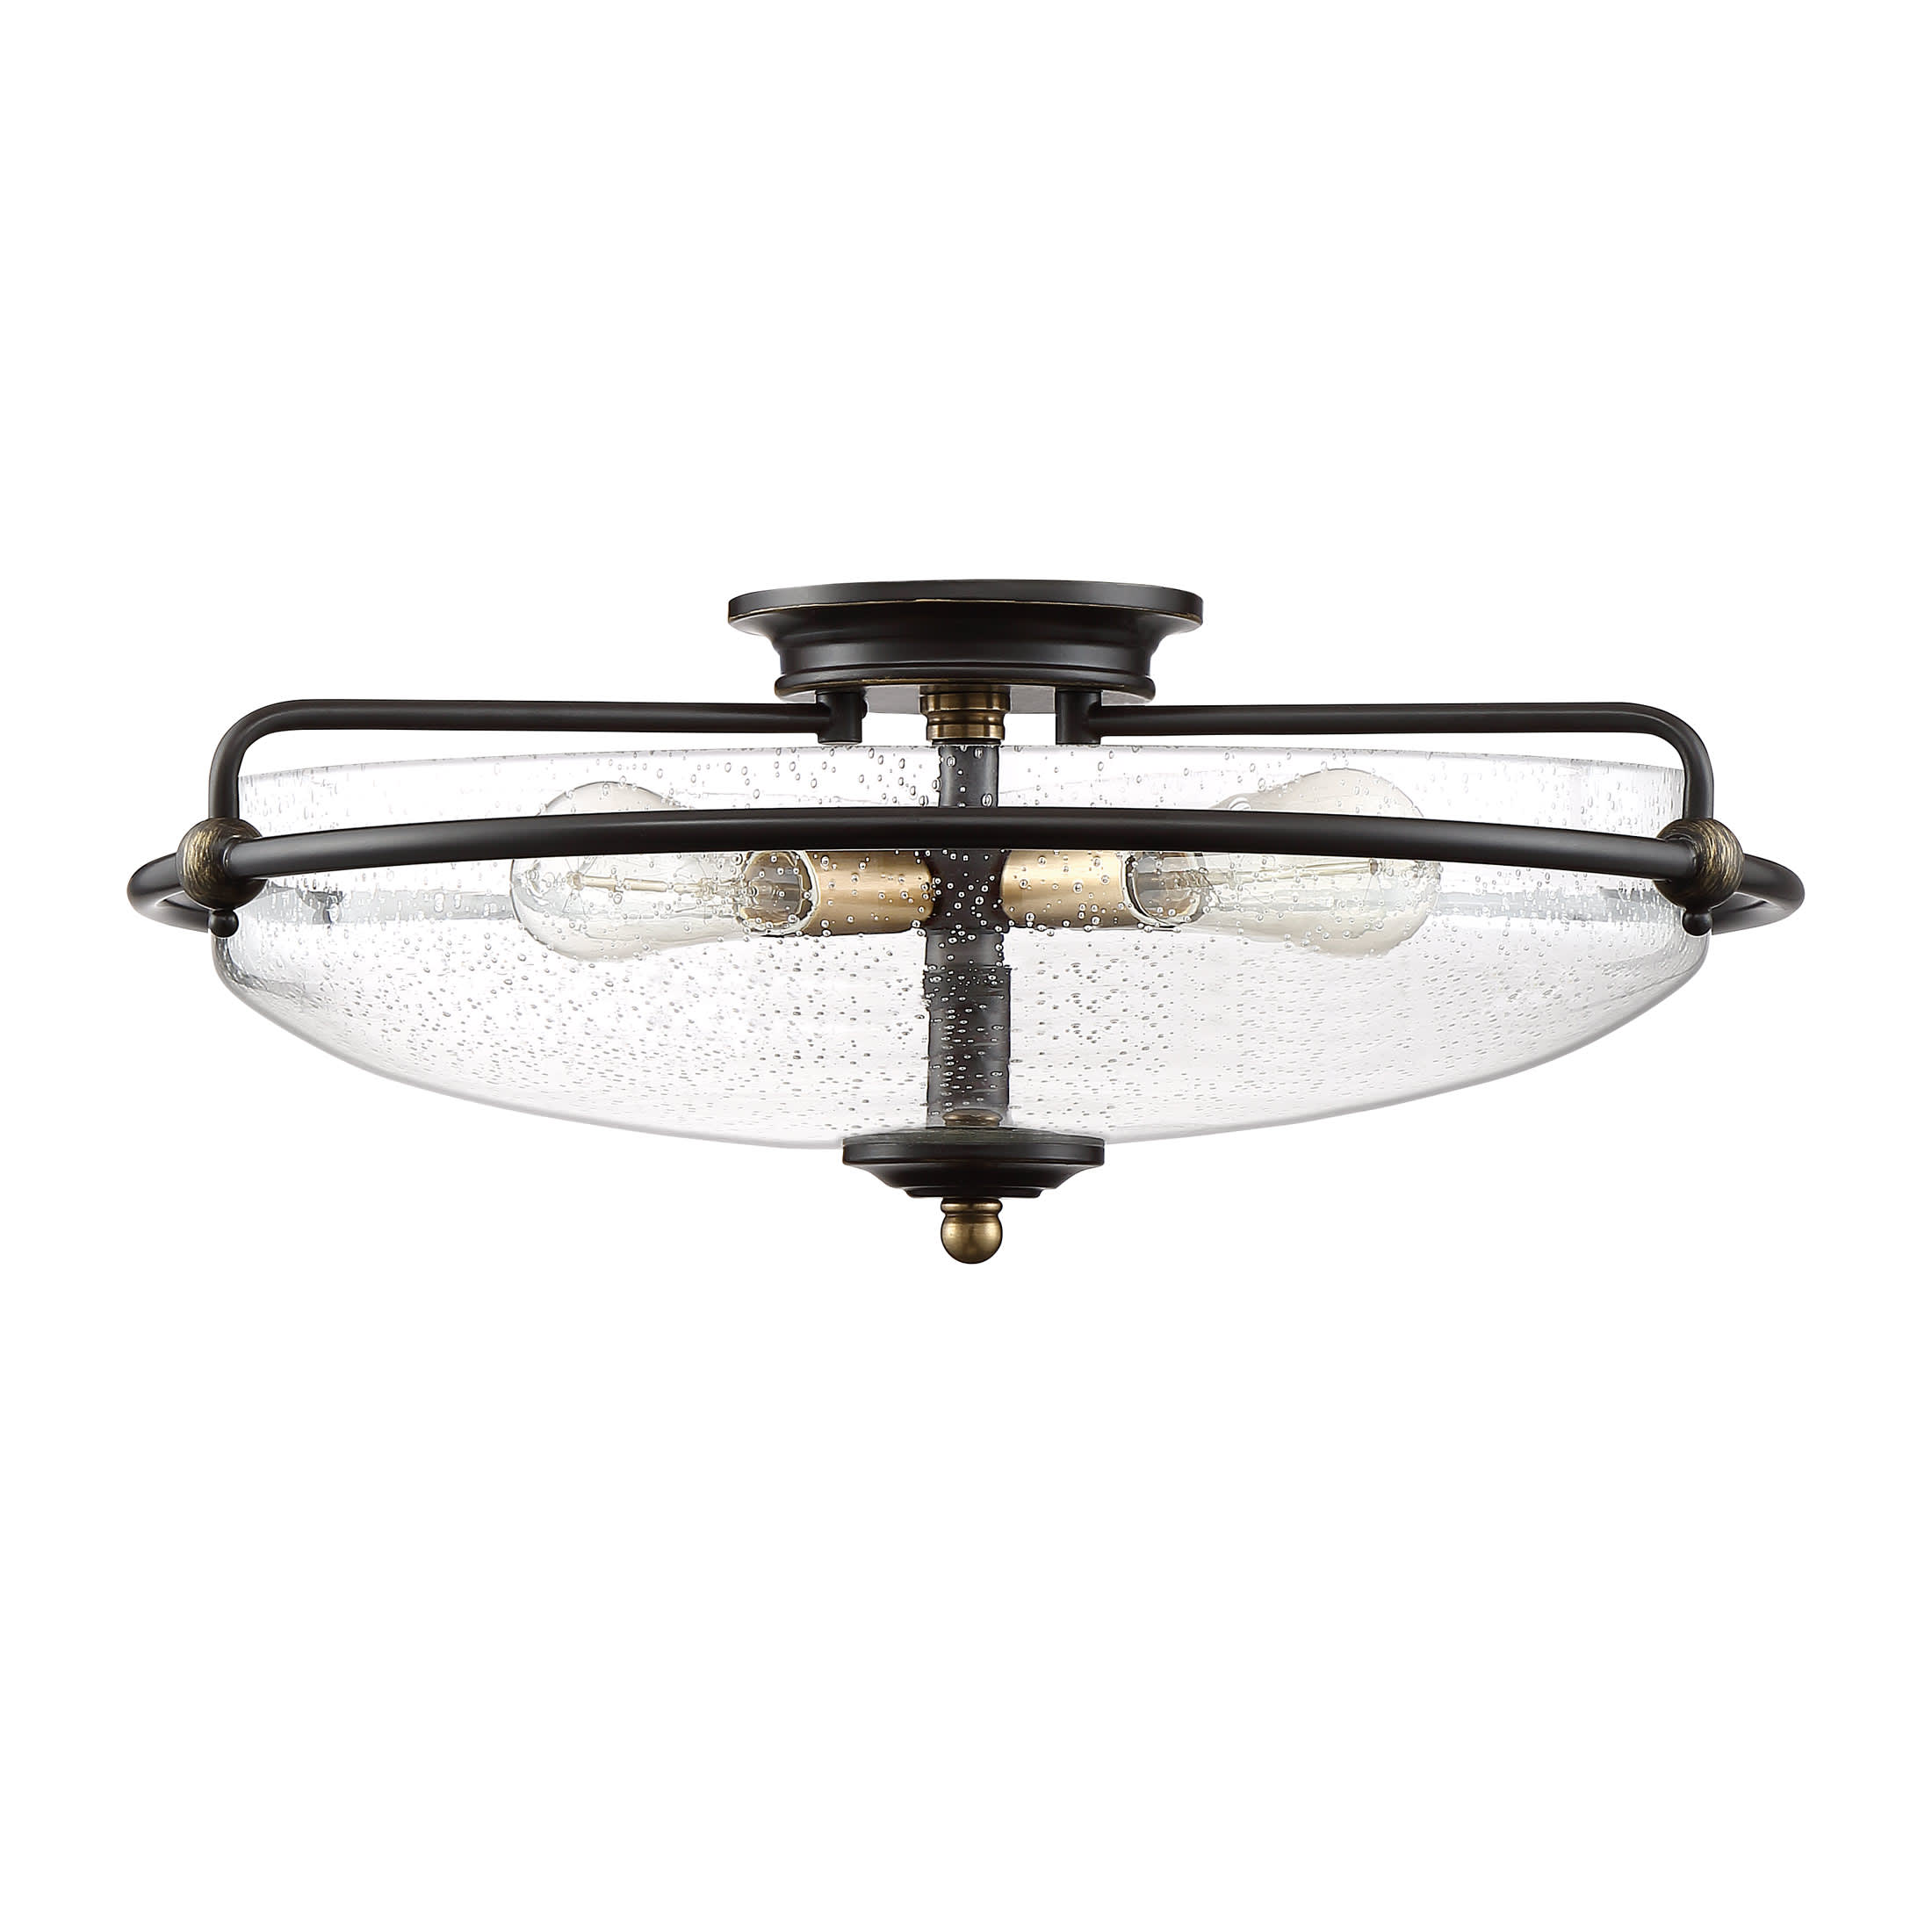 Quoizel Gfc1621pn Palladian Bronze Griffin 4 Light 21 Wide Flush Mount Bowl Ceiling Fixture With Seeded Glass Shade Lightingdirect Com